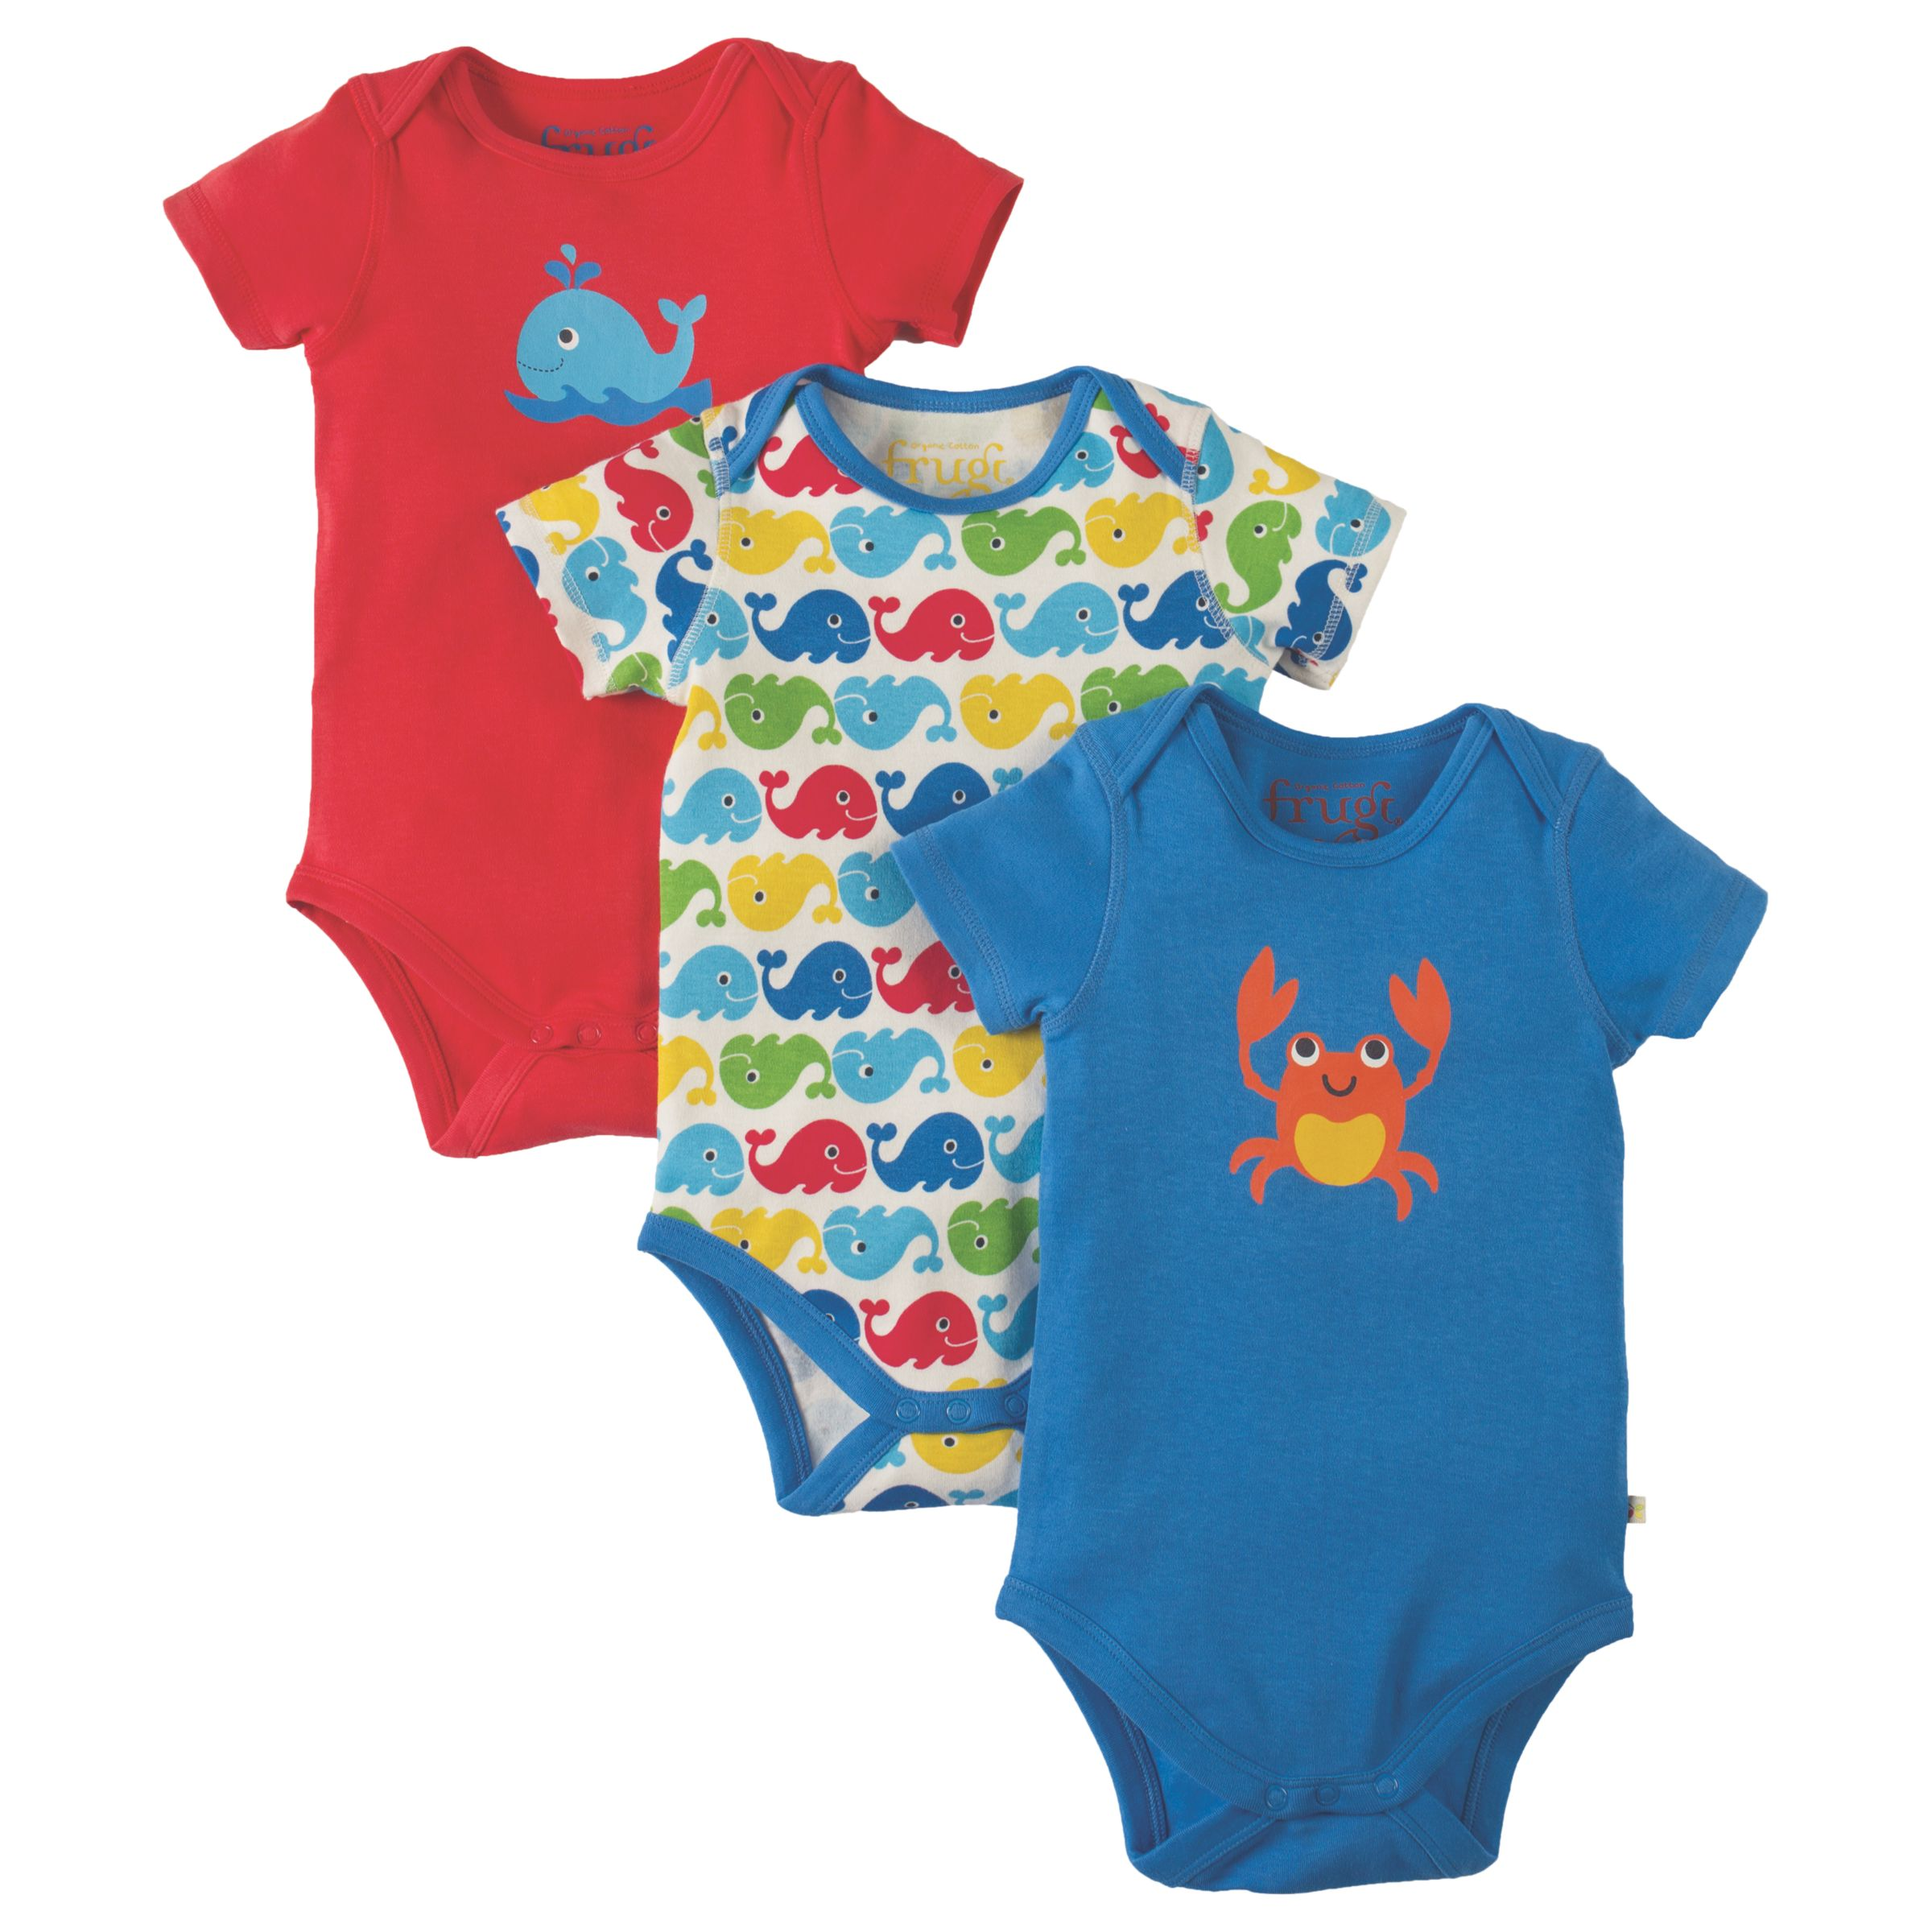 Frugi Organic Frugi Organic Baby Super Special Whale and Crab Bodysuit, Pack of 3, Navy/Multi